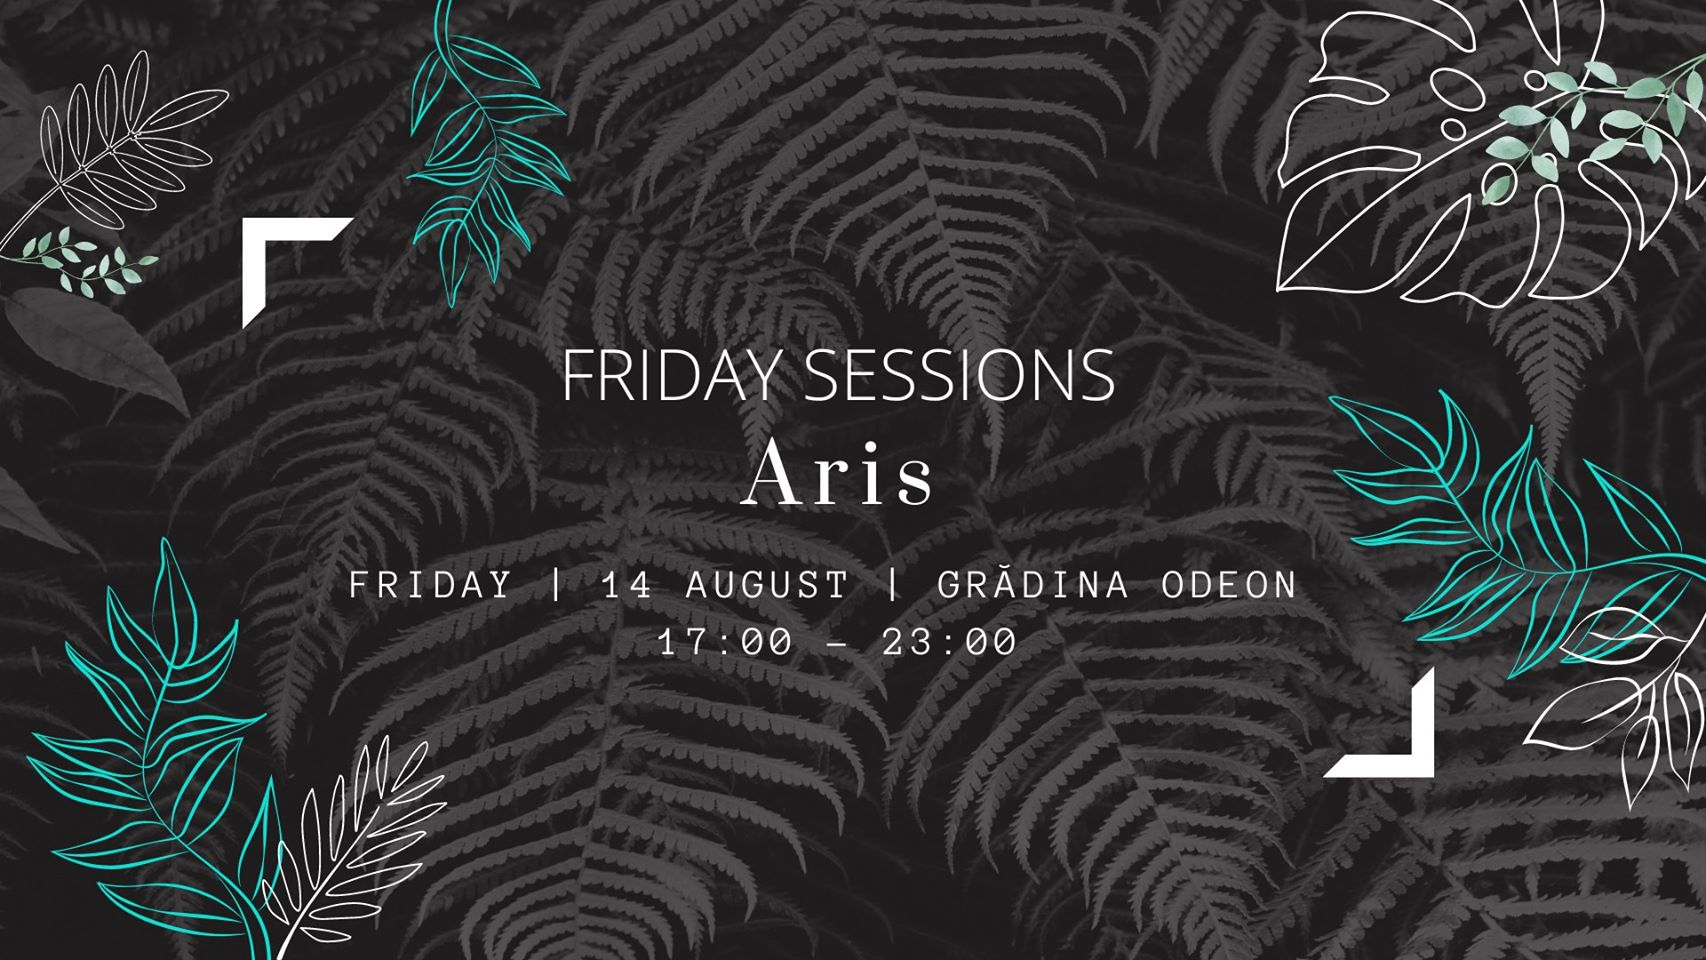 weekend 14-16 august friday sessions in gradina odeon